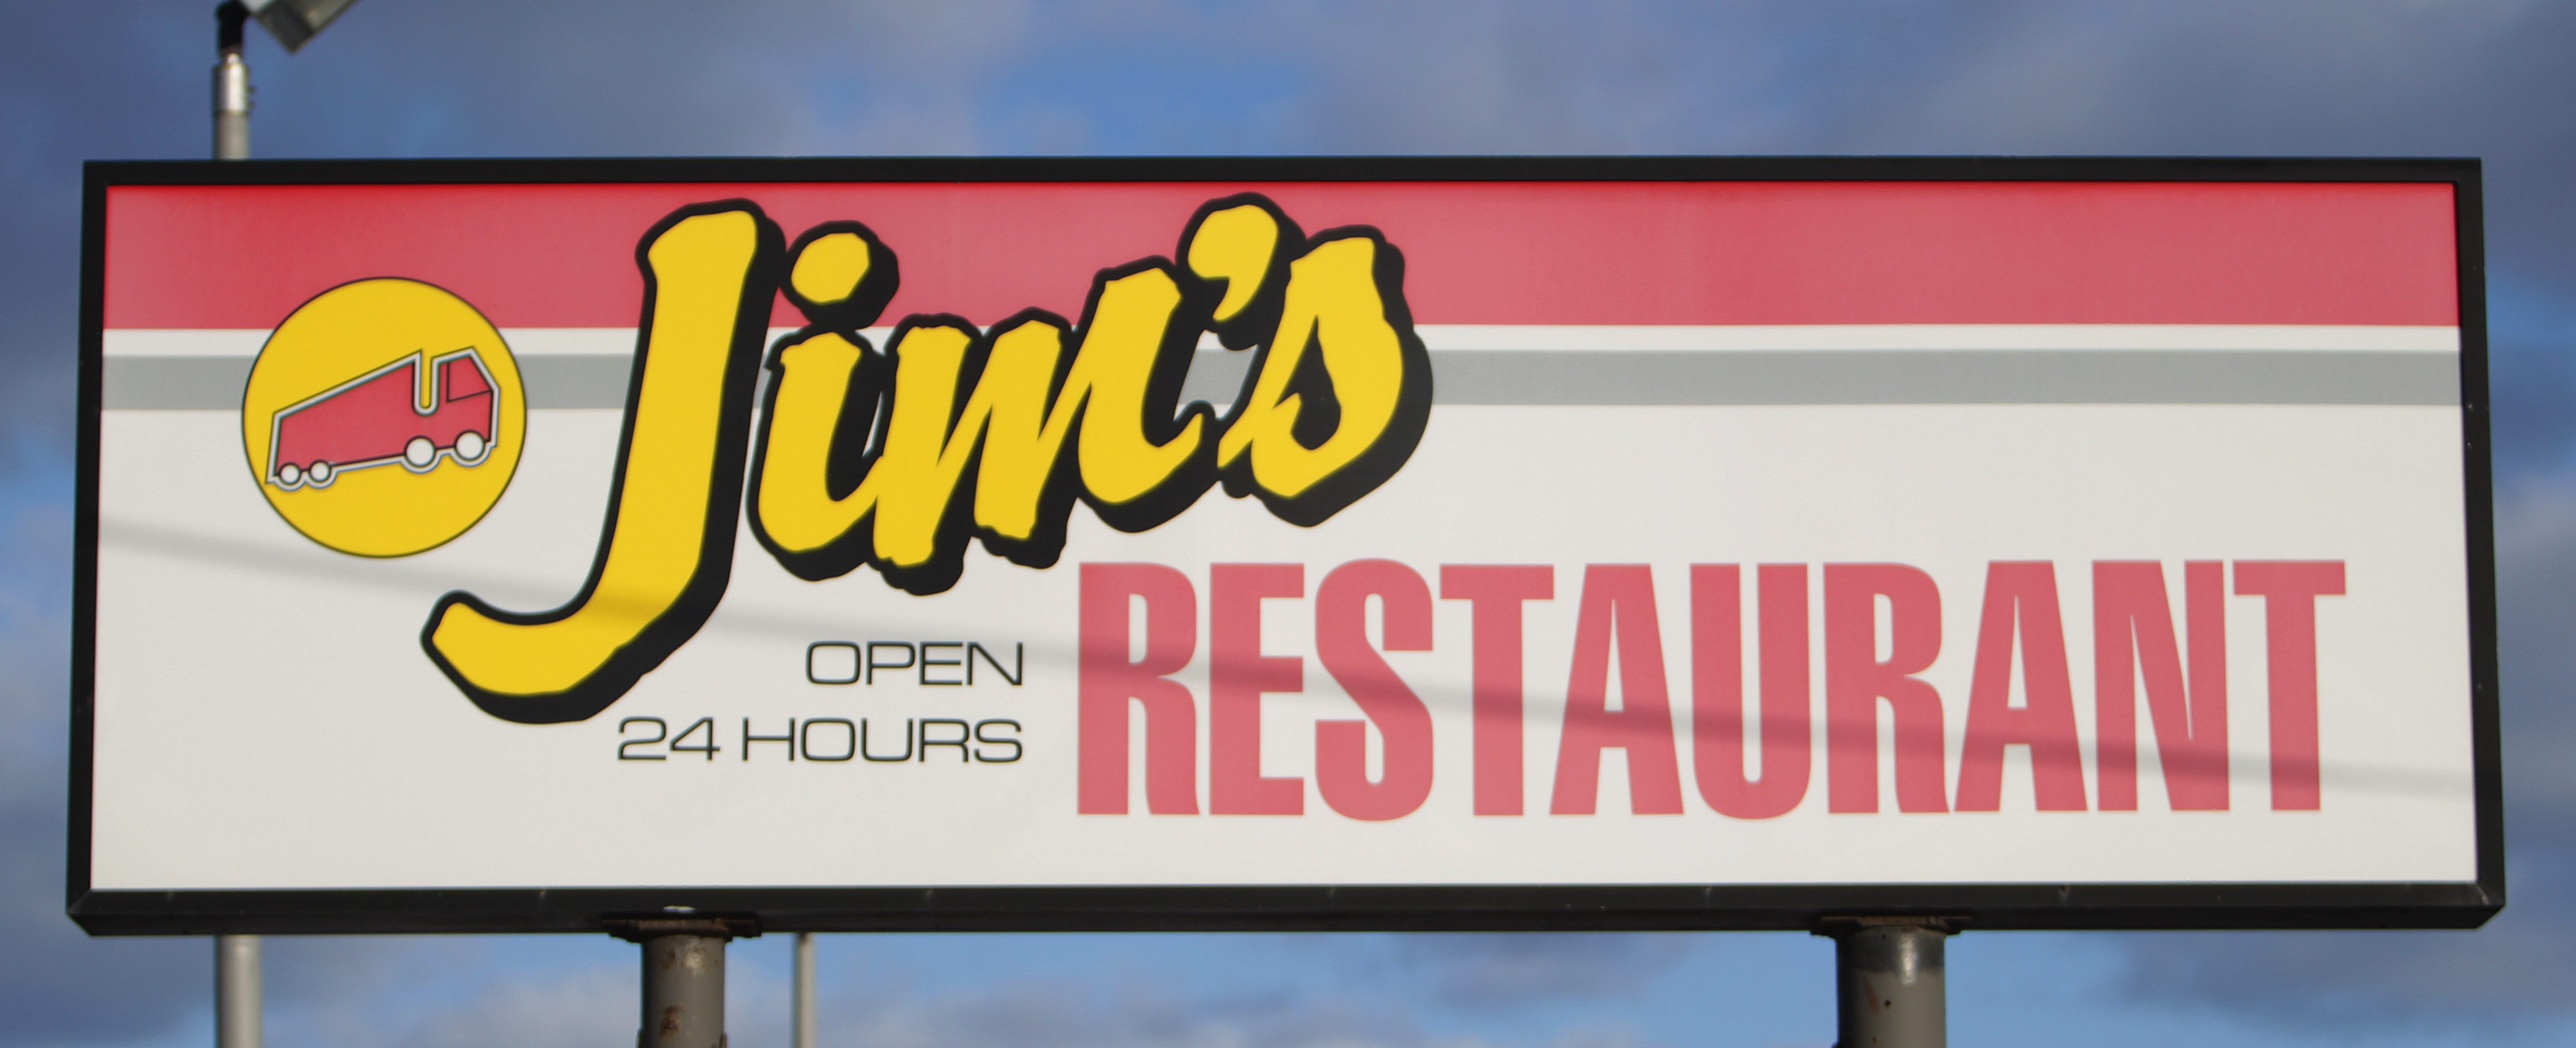 Jim's Restaurant on Walden Avenue is open 24 hours with a full menu from breakfast to dinner.    (Sharon Cantillon/Buffalo News file photo)